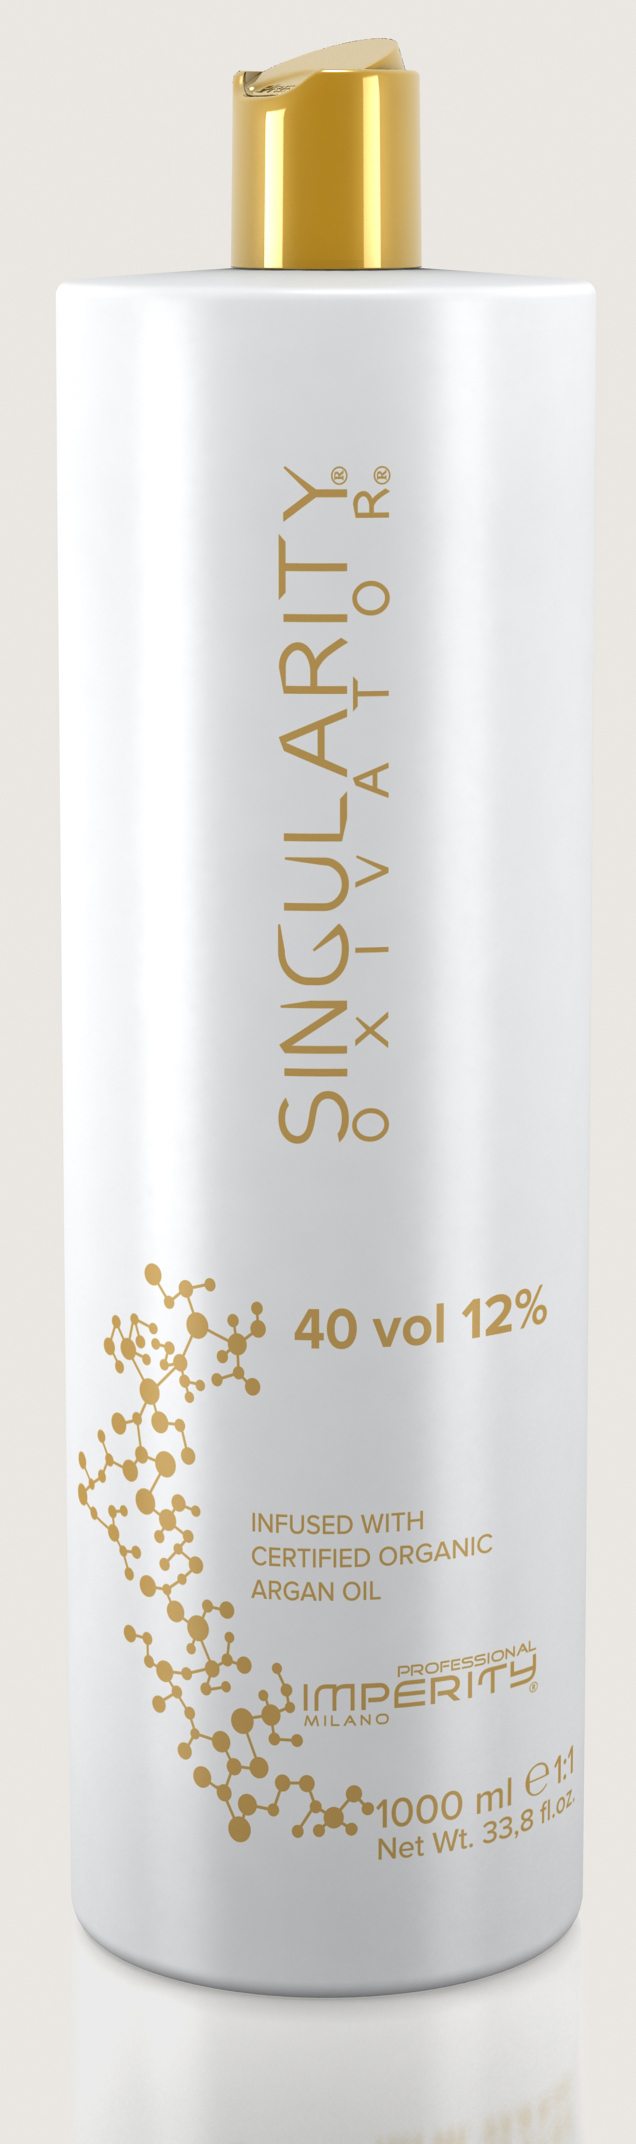 IMPERITY SINGULARITY Oxivator 12% 1000 ml